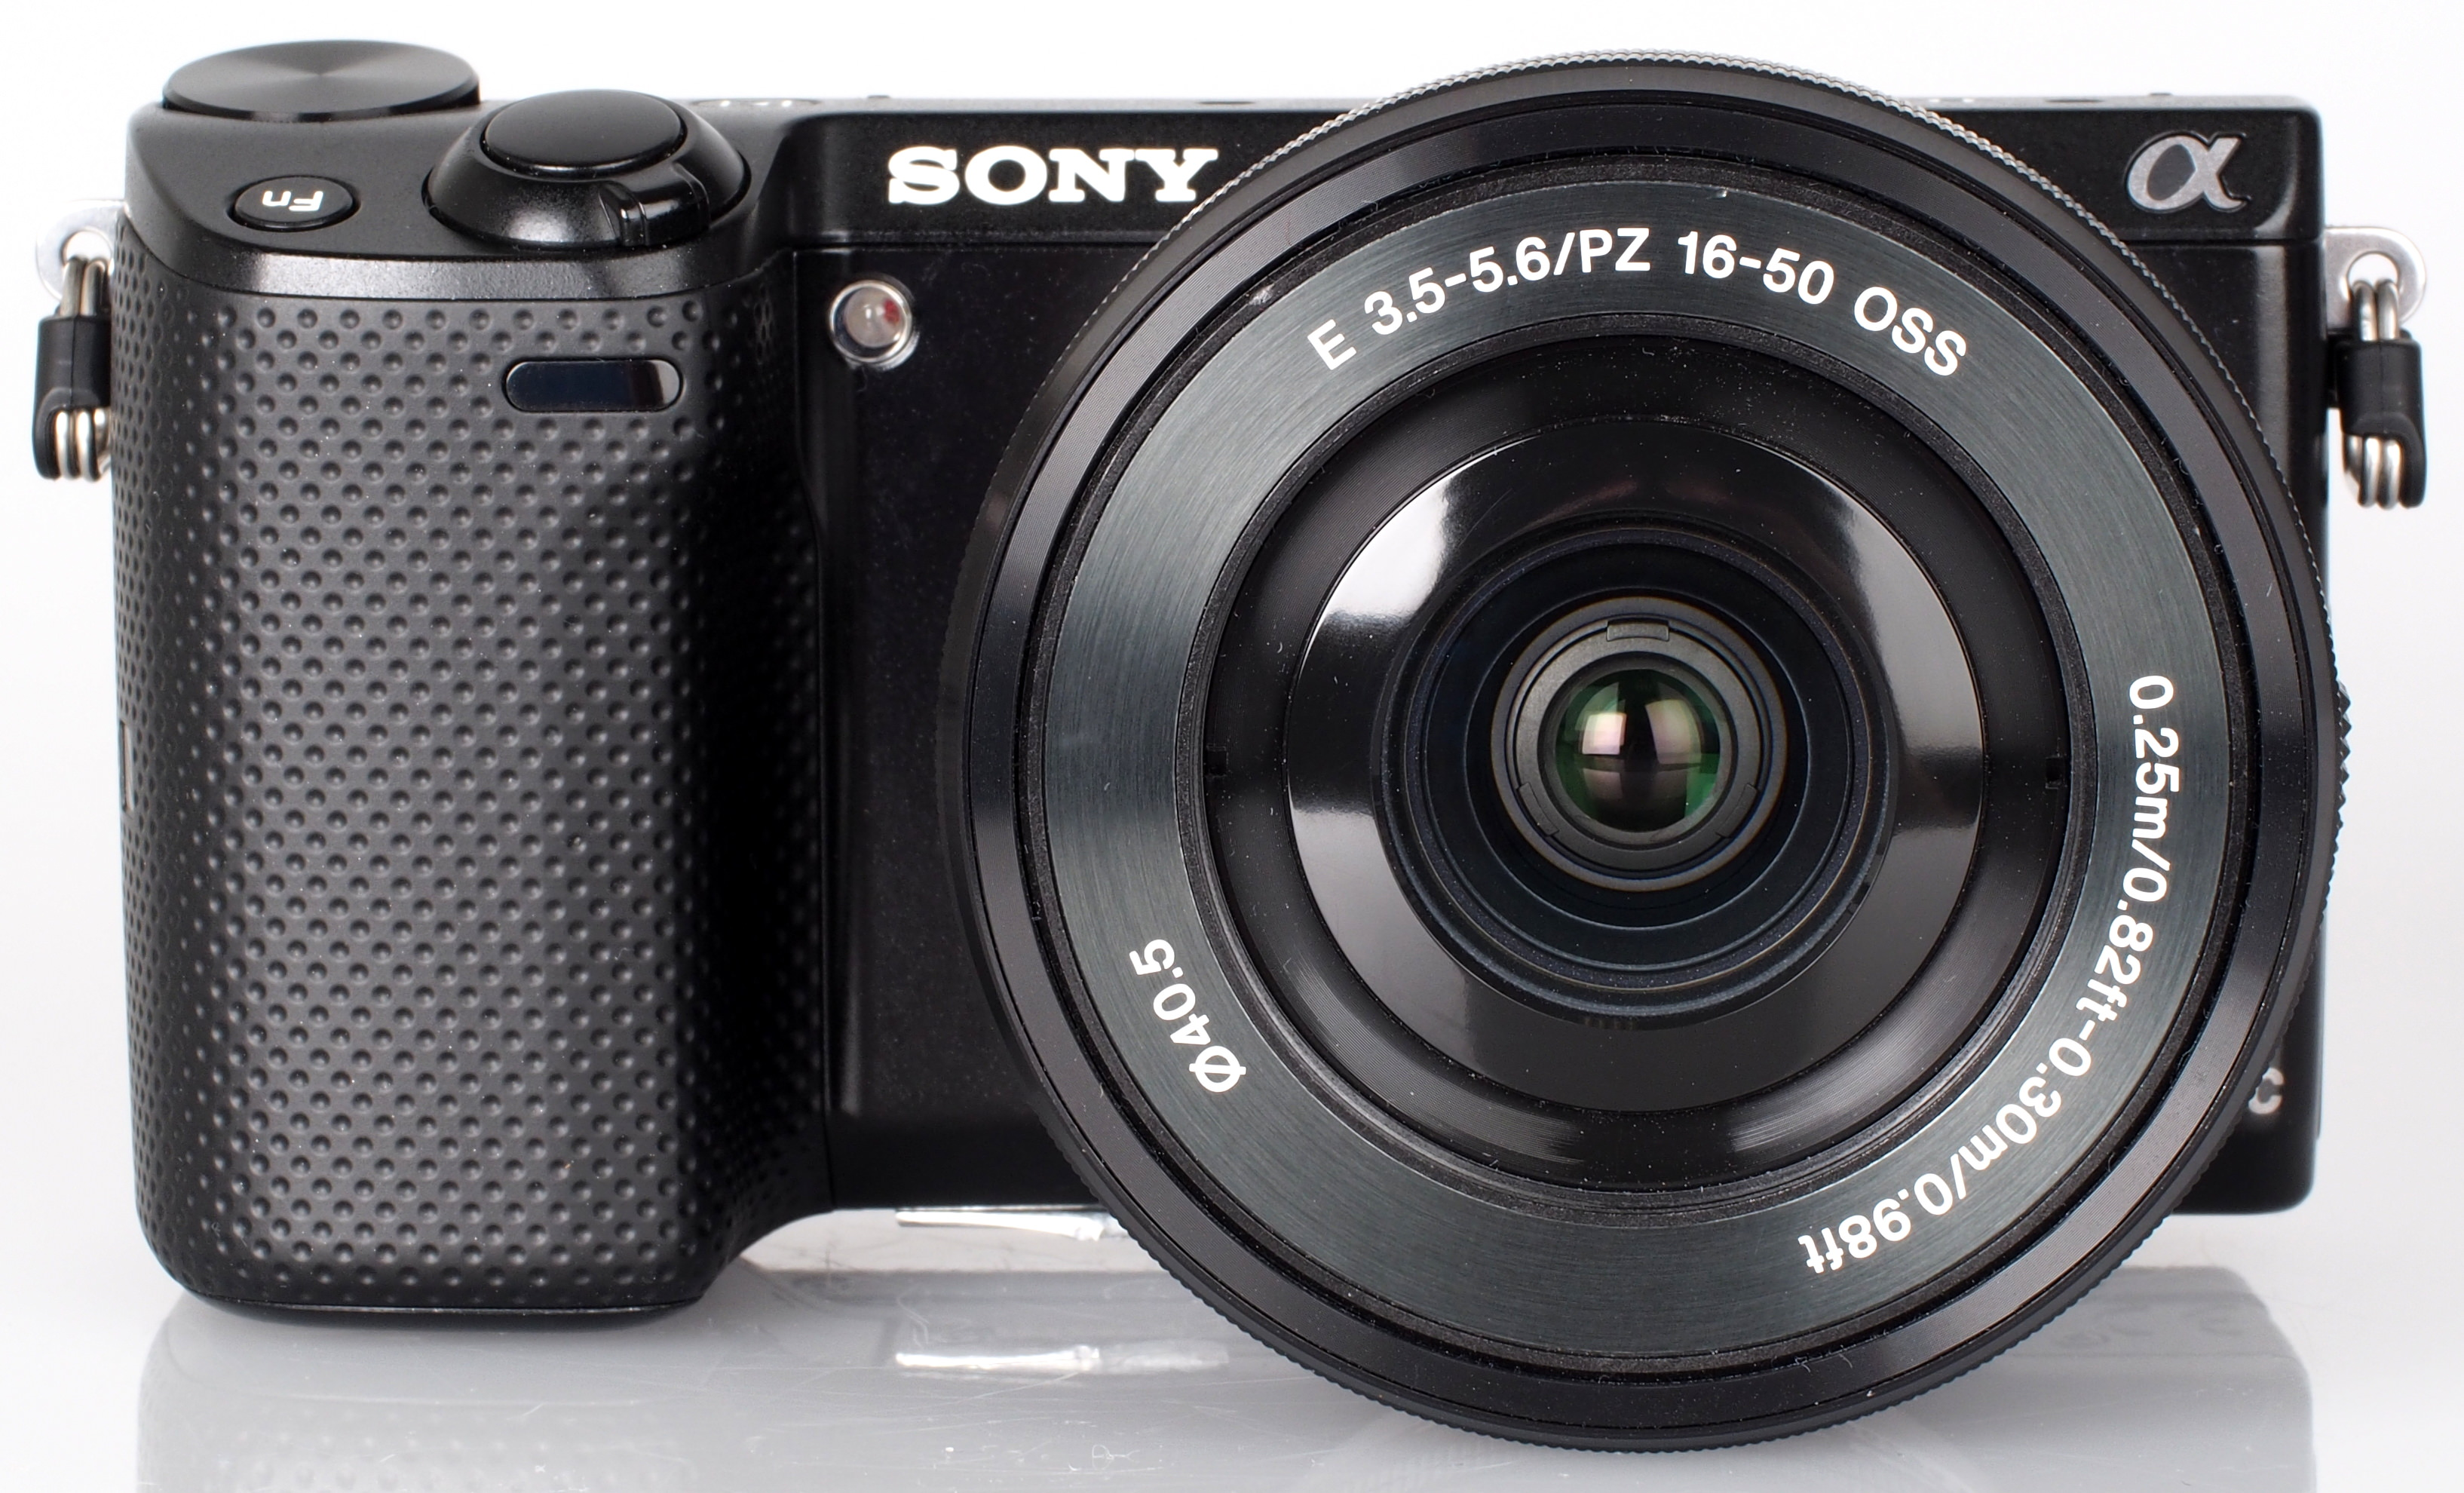 Sony NEX-5T Mirrorless Camera Review